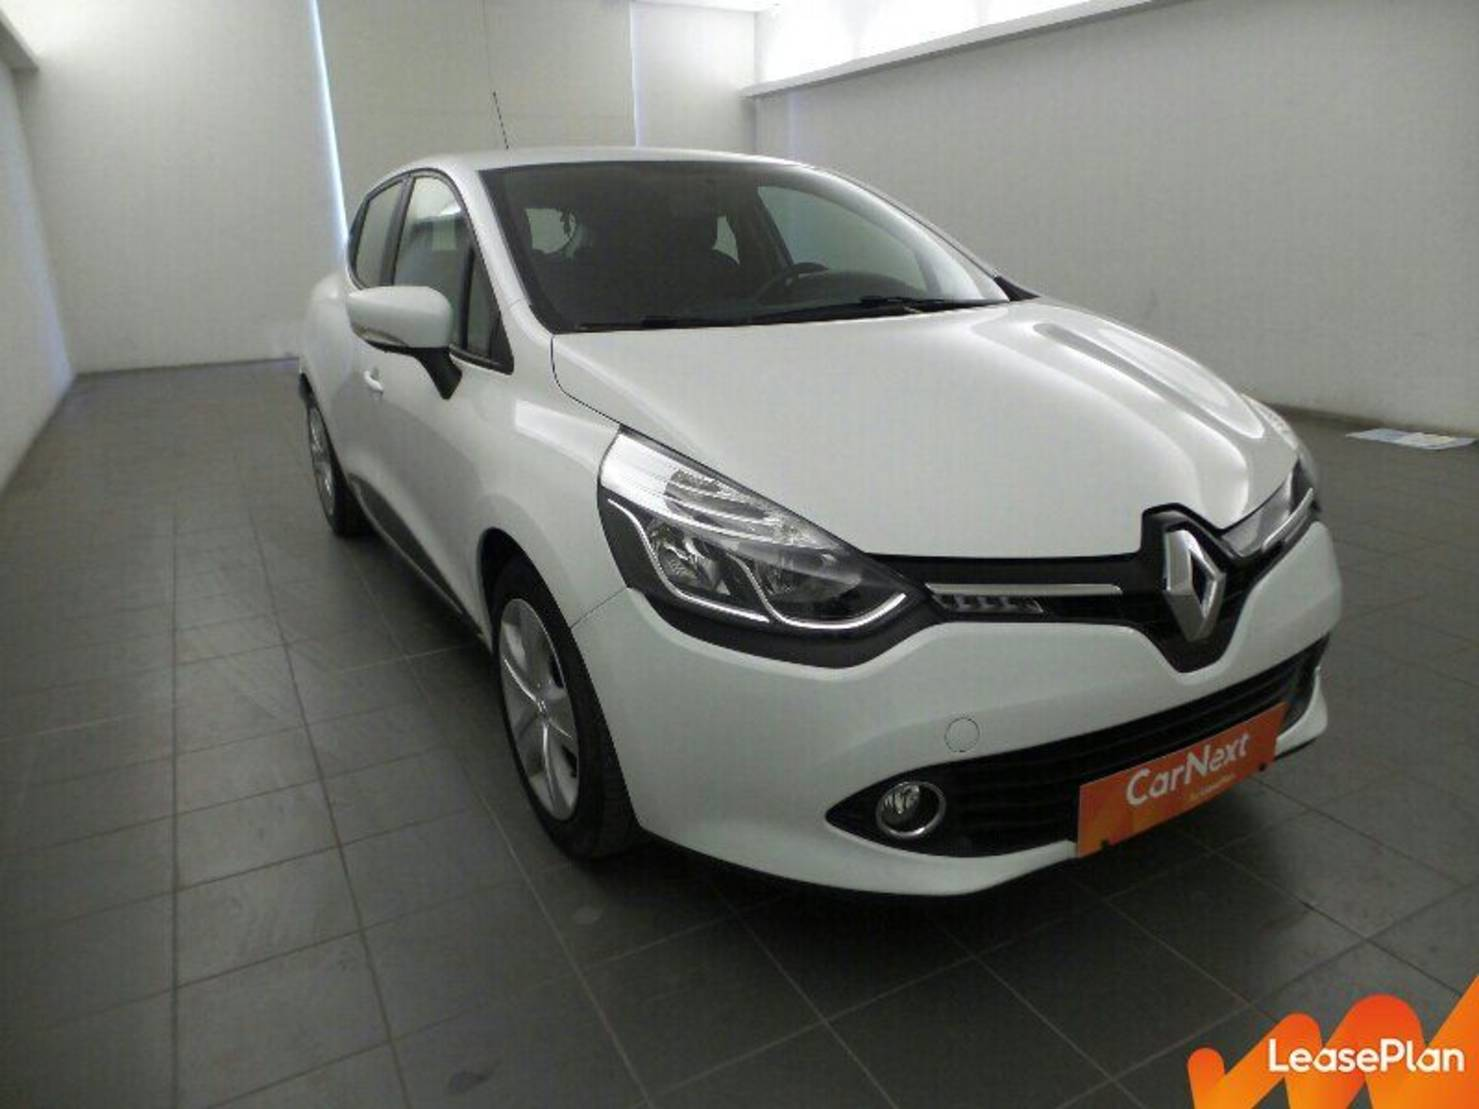 Renault Clio IV dCi 90 Business Energy eco2 82g detail2